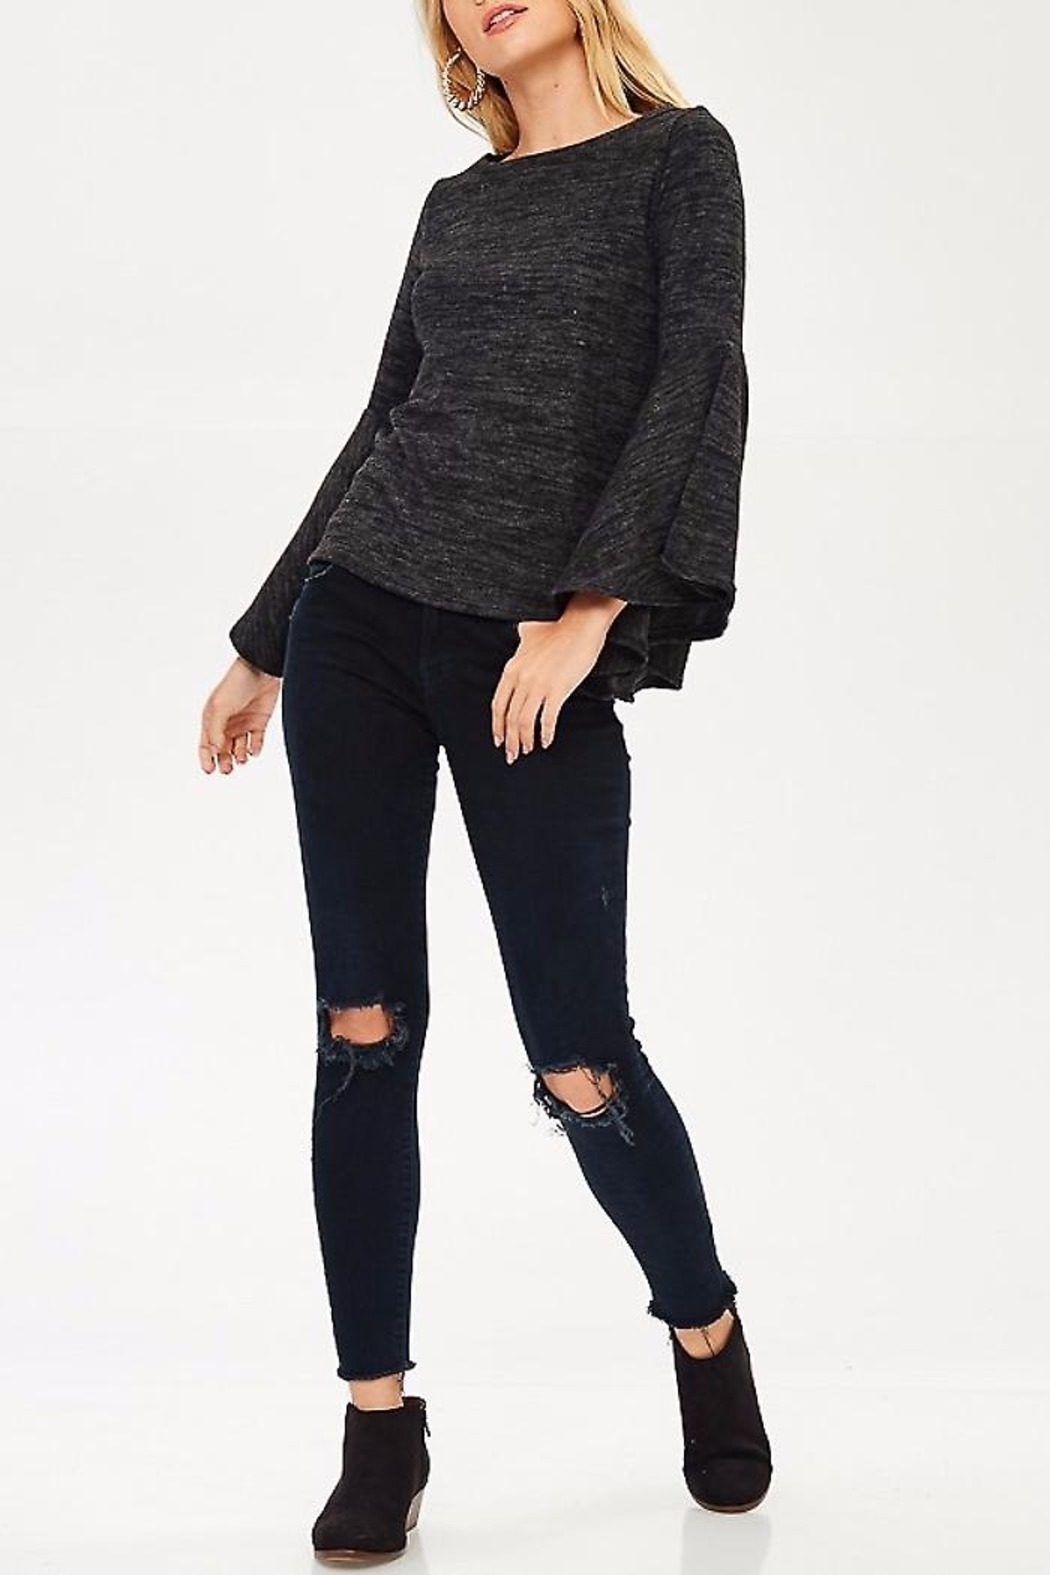 People Outfitter Bell Sleeve Sweater - Back Cropped Image